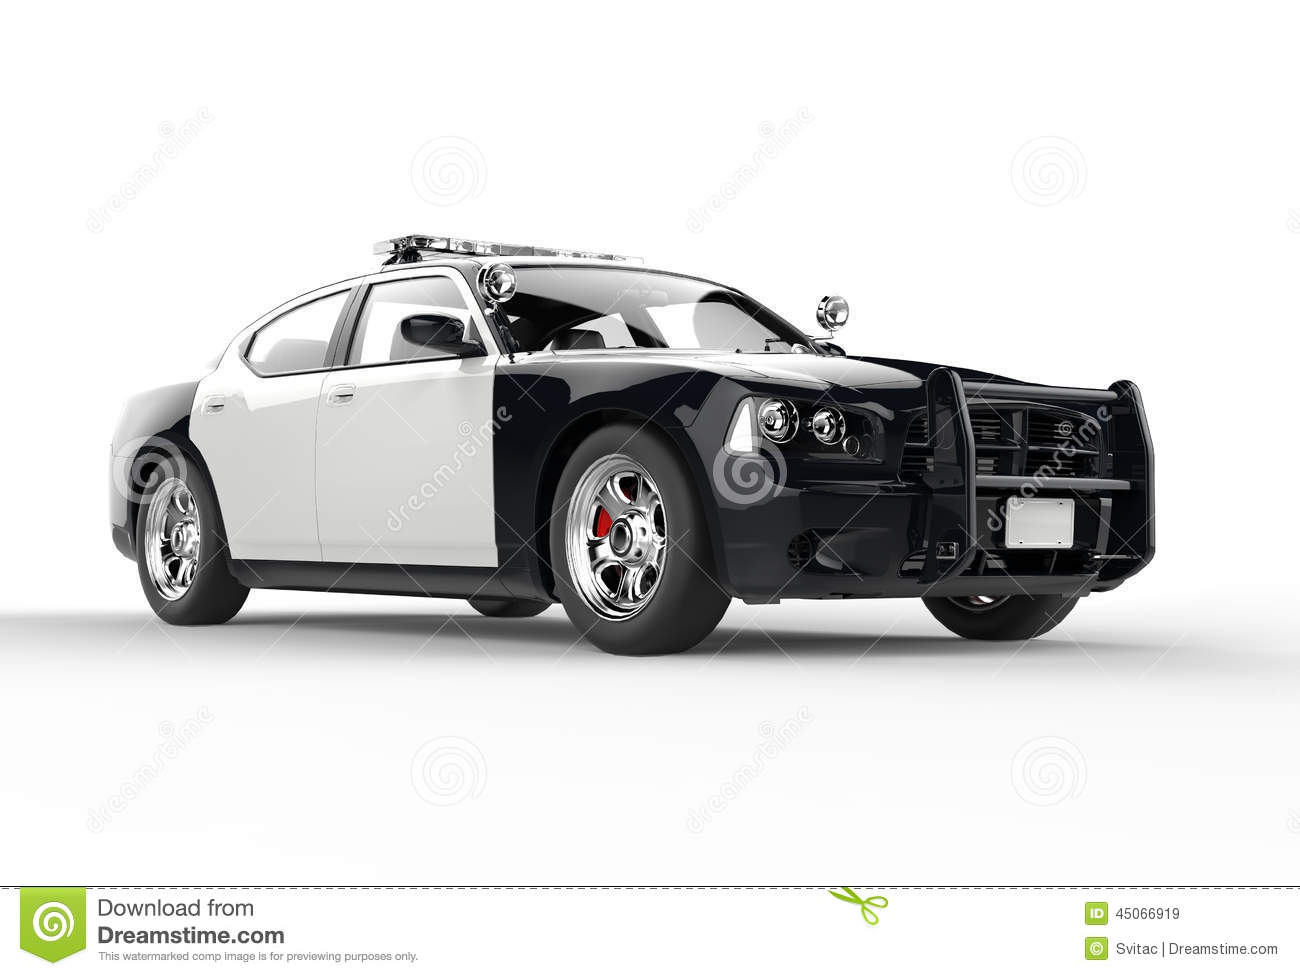 Police car without decals far front shot